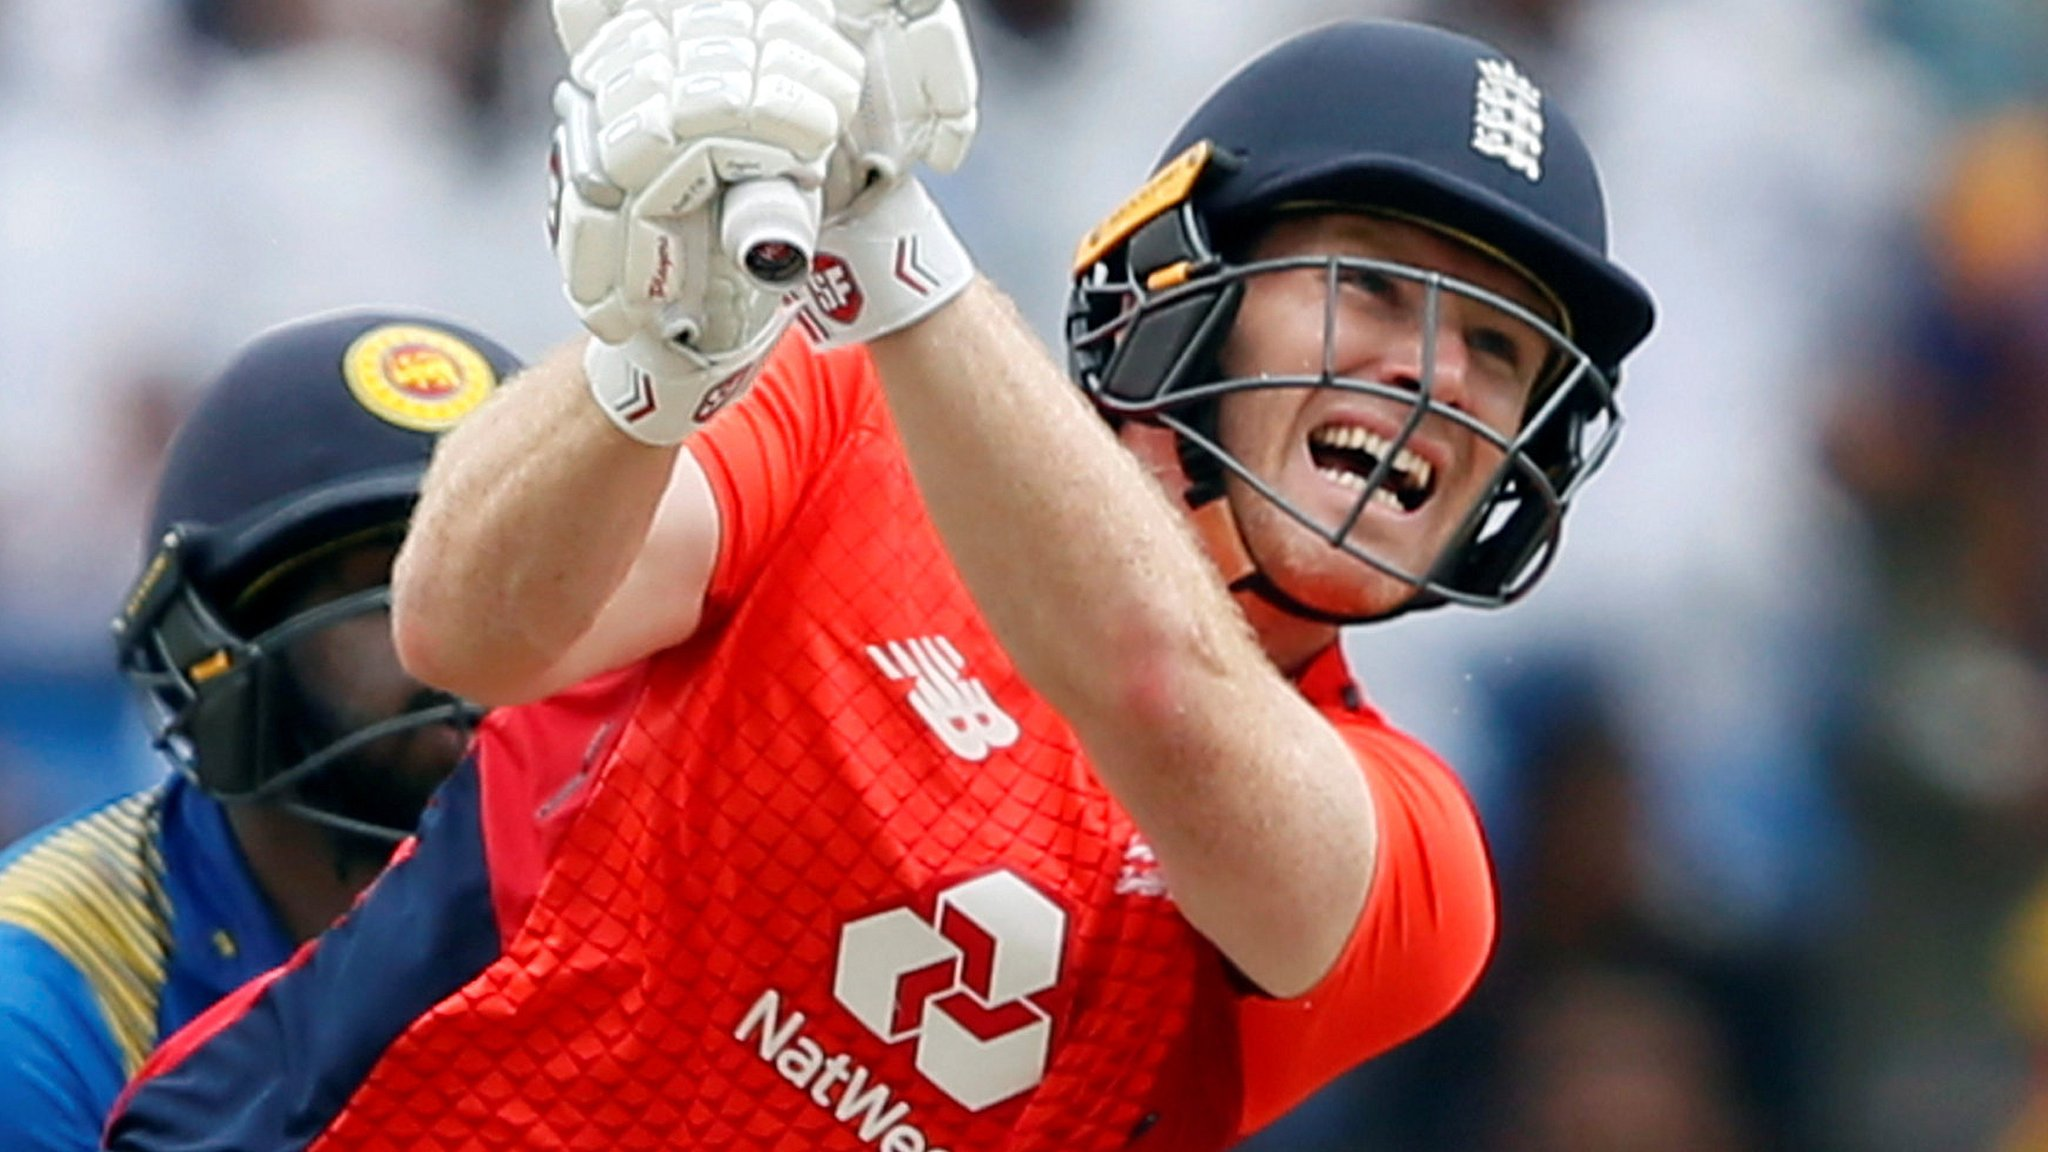 Sri Lanka v England: Eoin Morgan's form a good sign for World Cup - Michael Vaughan